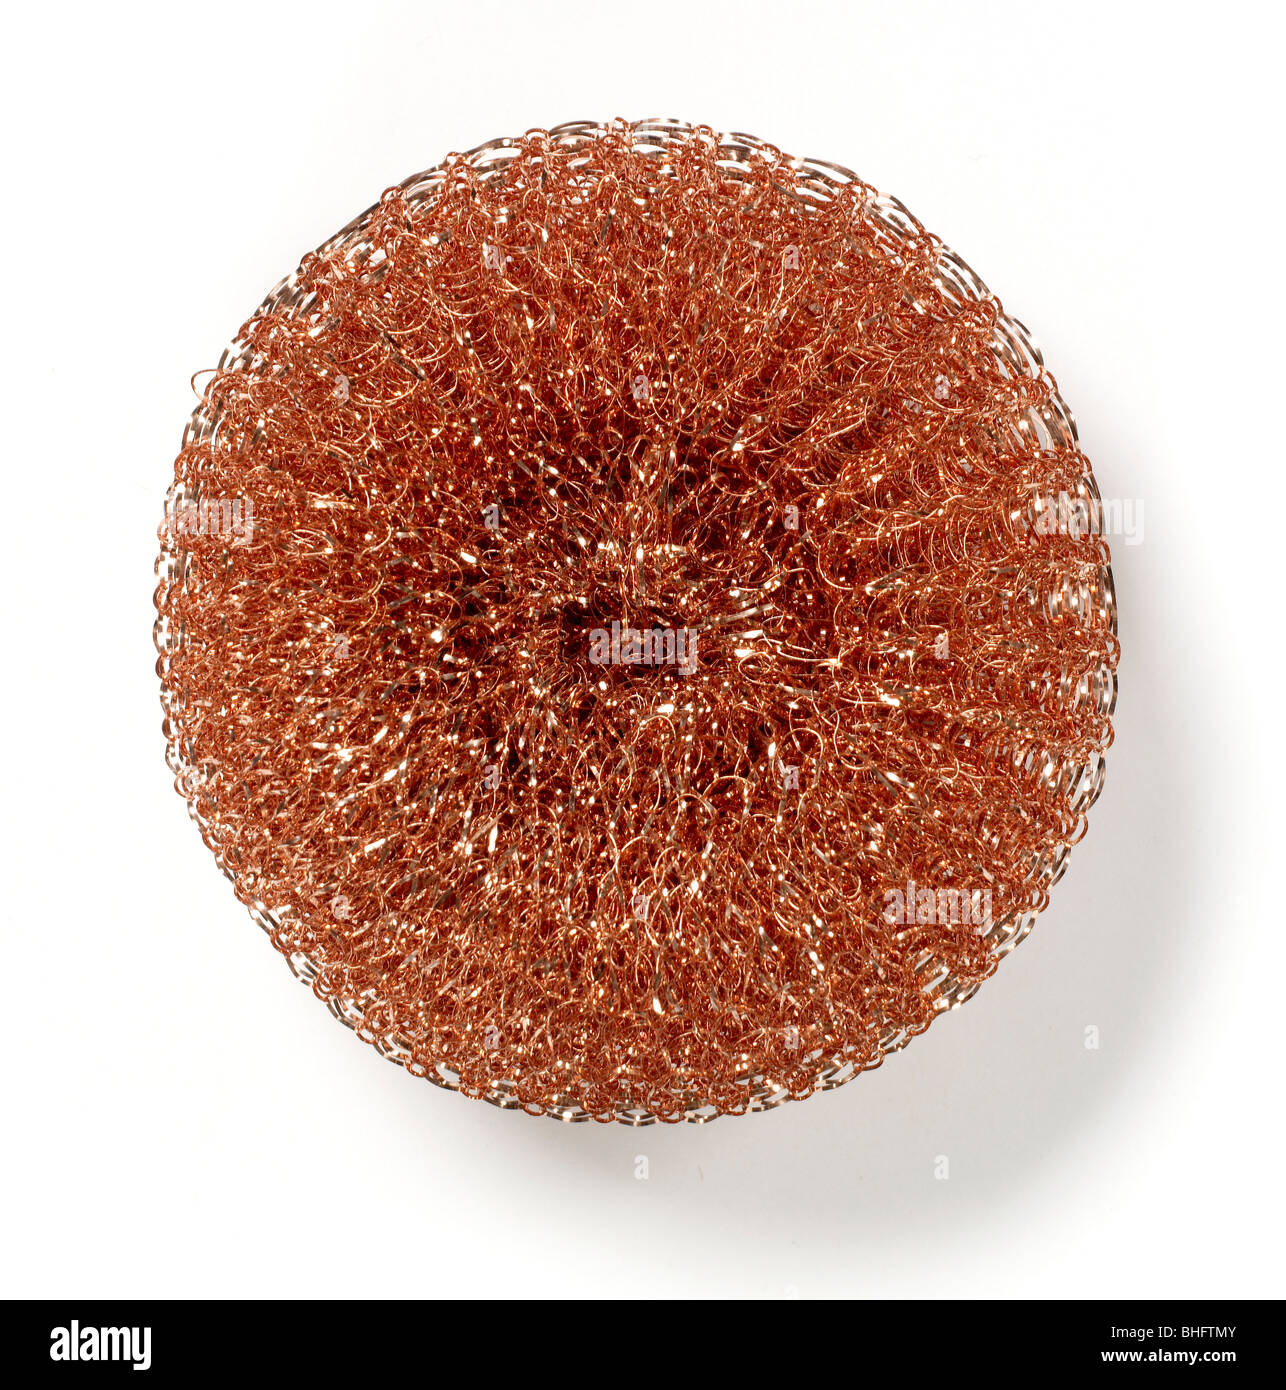 Copper wire scouring pad - Stock Image